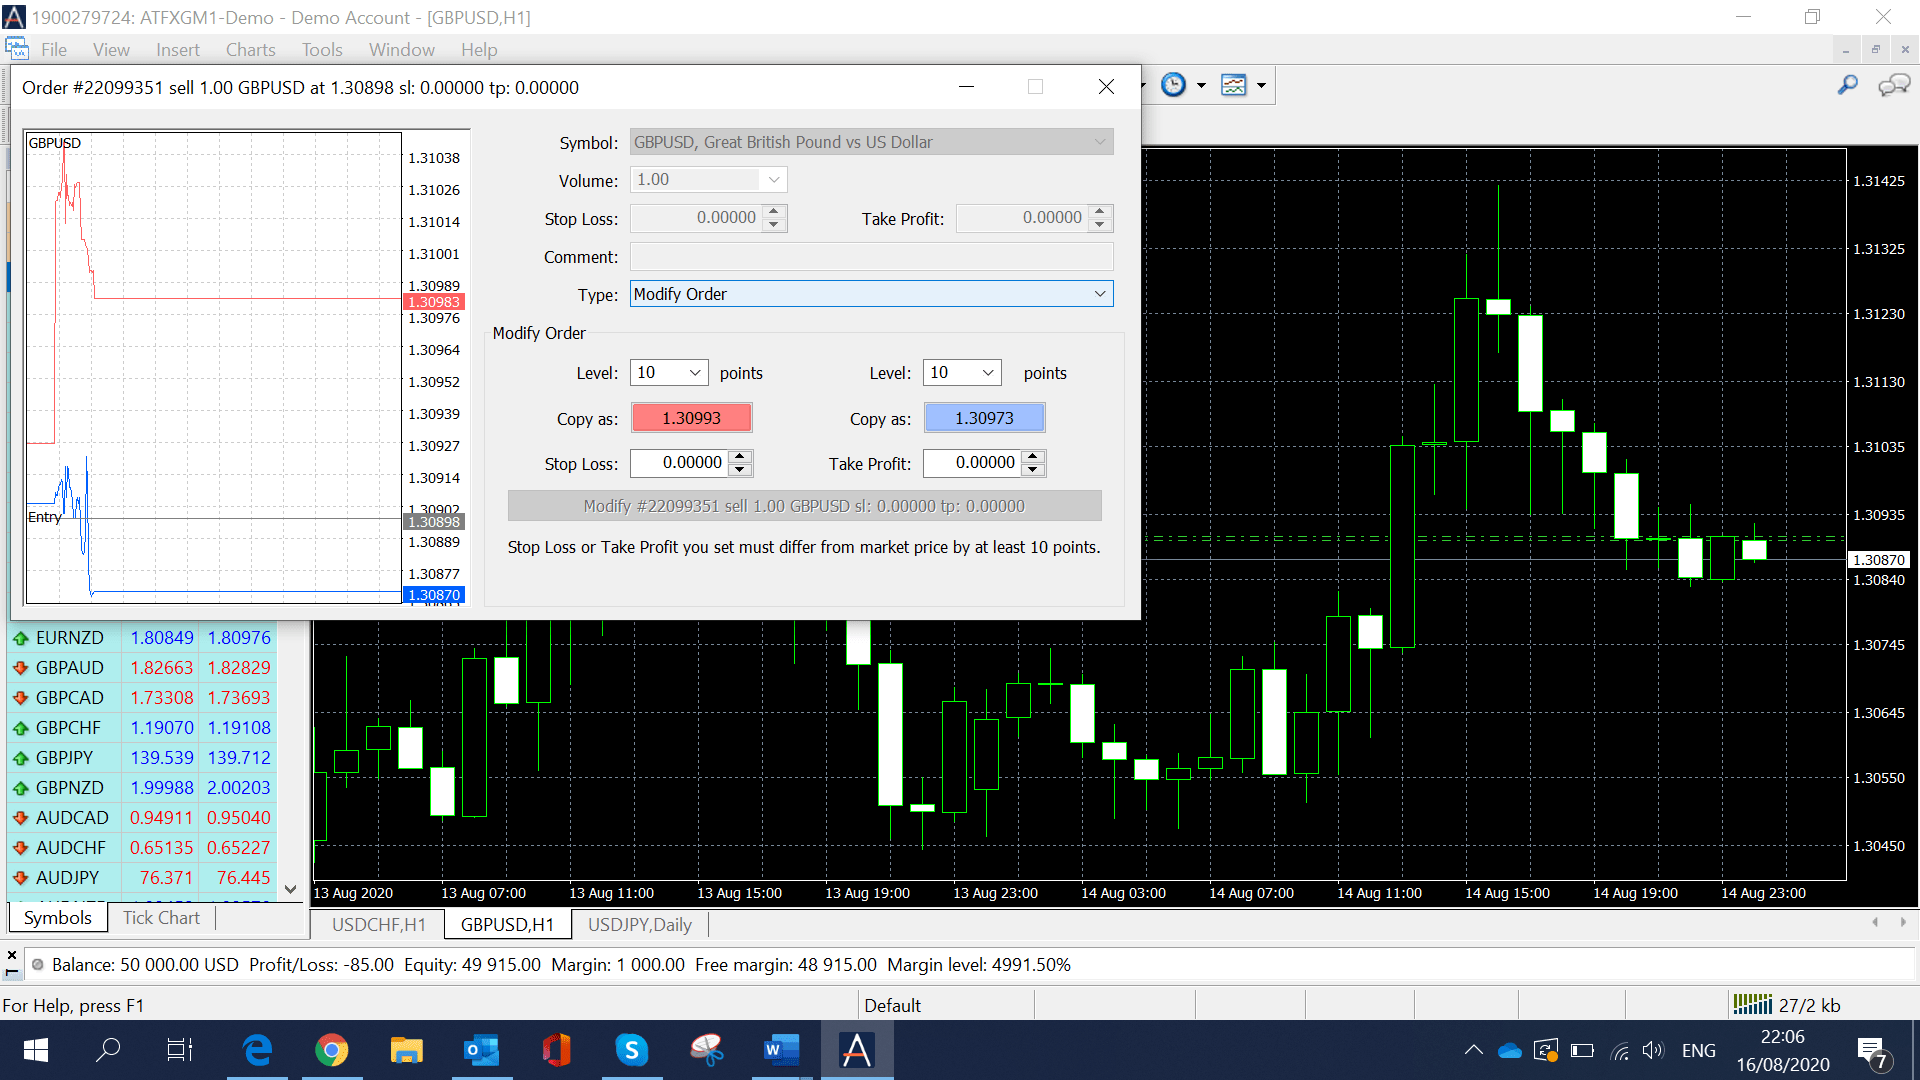 tradingplatforms-metatrader4-whatismt4-and-howtouseit-modify-order-image